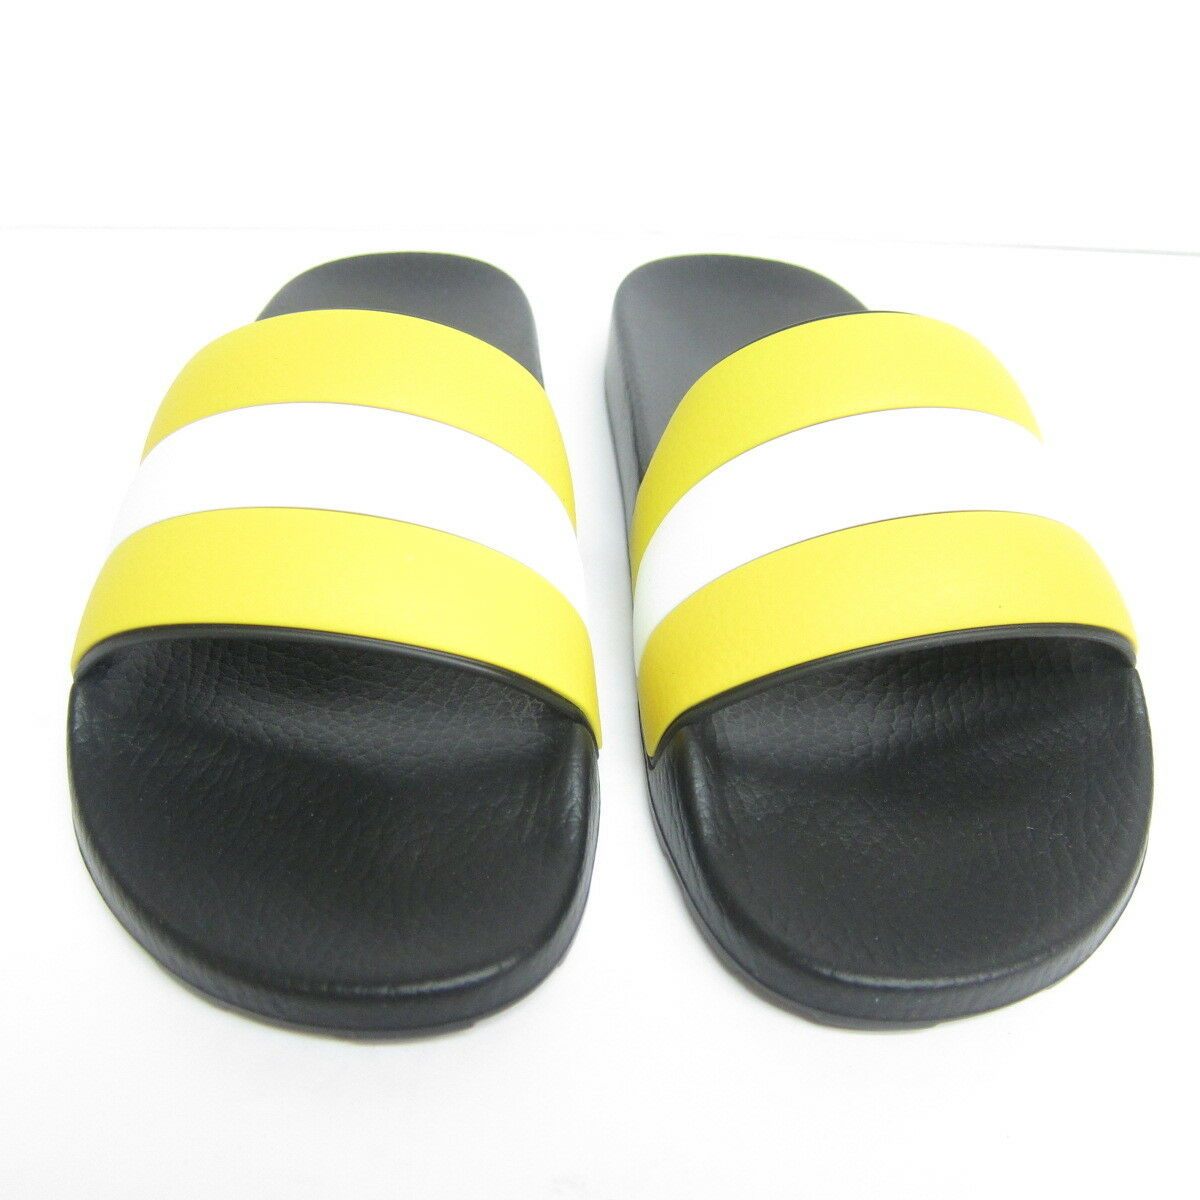 P-640963 New Bally Sleter Yellow Yellow Yellow Blk White Rubber Slide US 8 EU 7 FR 41 8b0c98